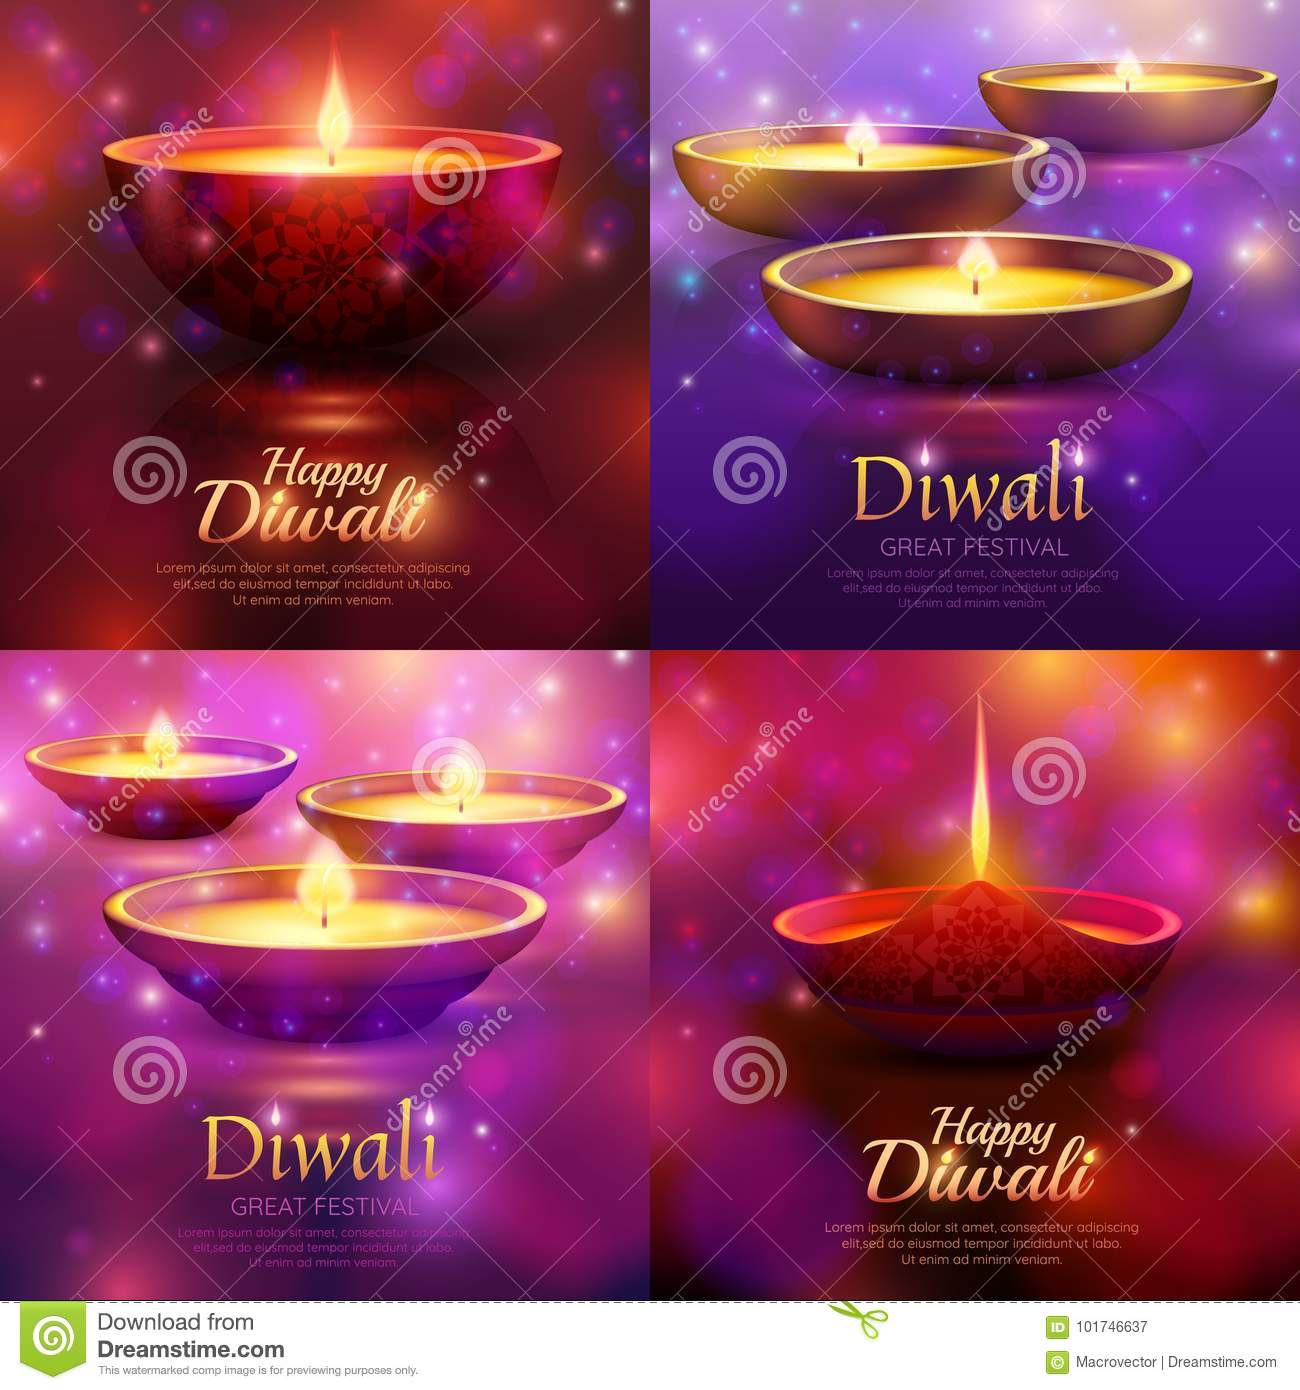 Diwali Celebration Design Concept